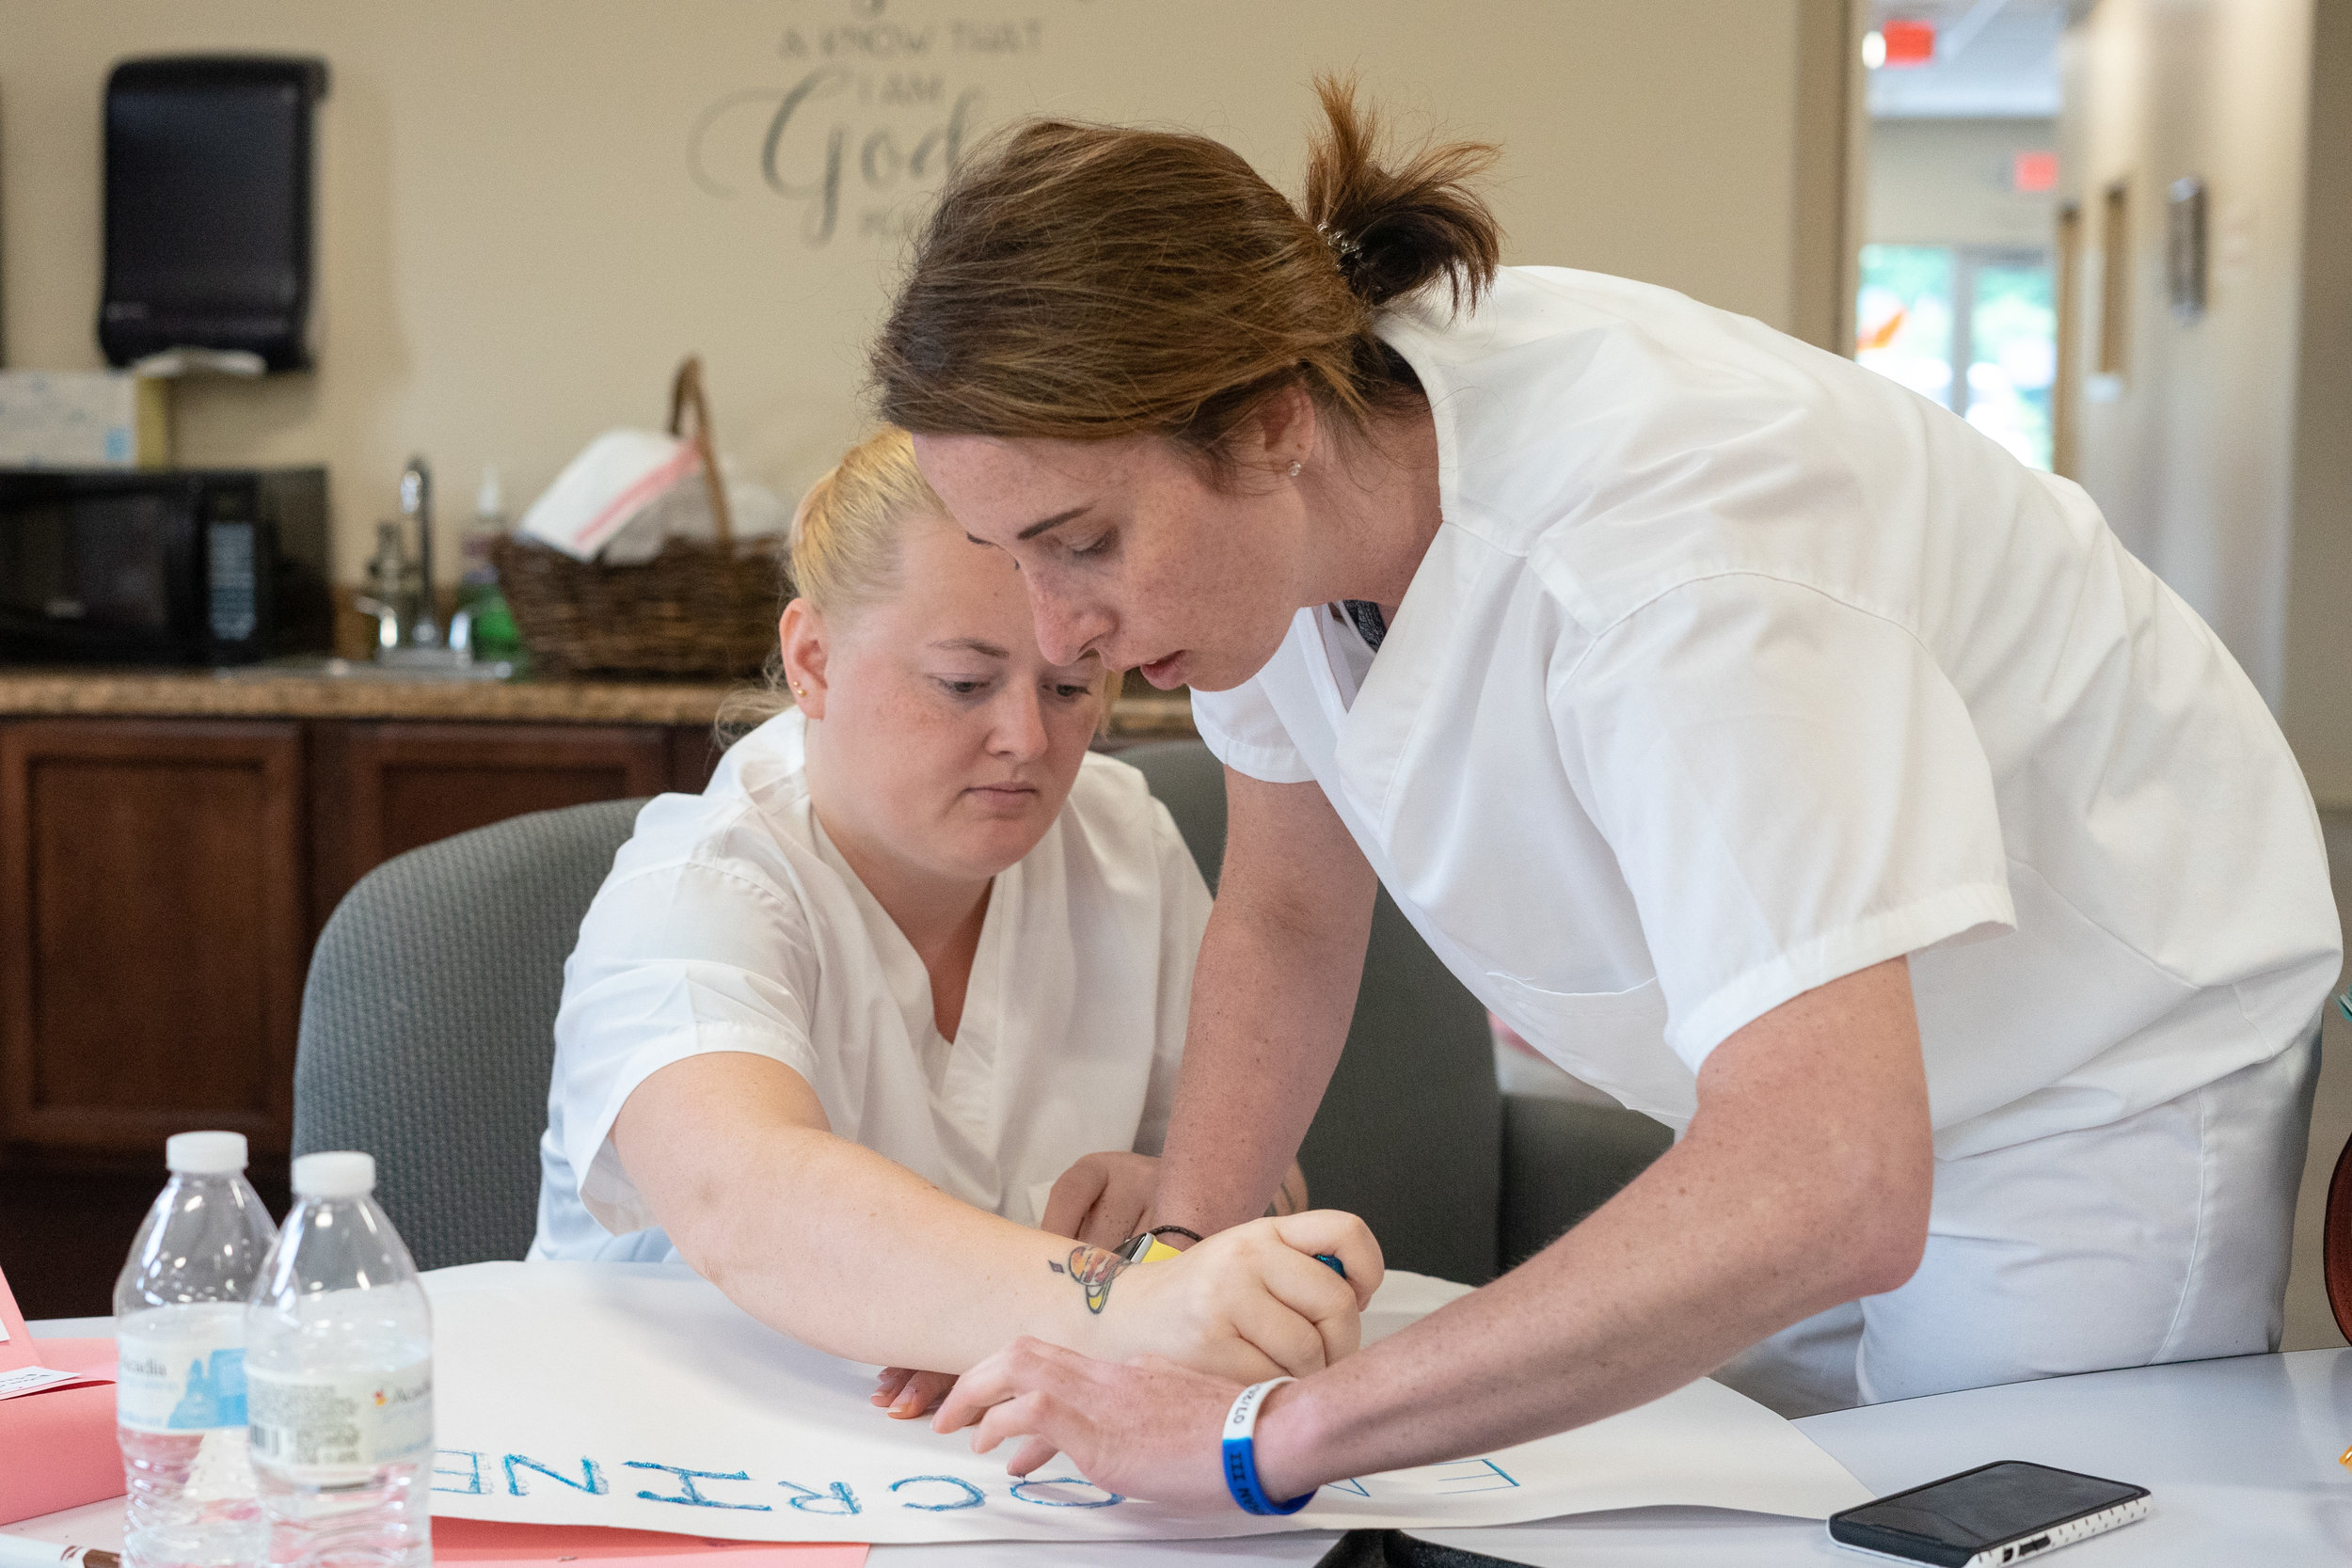 Destiny (left) and Claire (right) work on their class presentation on the Endocrine system at New Hope Ministries. Claire has overcome financial and medical difficulties and is hoping that the completion of the Nurse Aide program will set her on a fresh track.